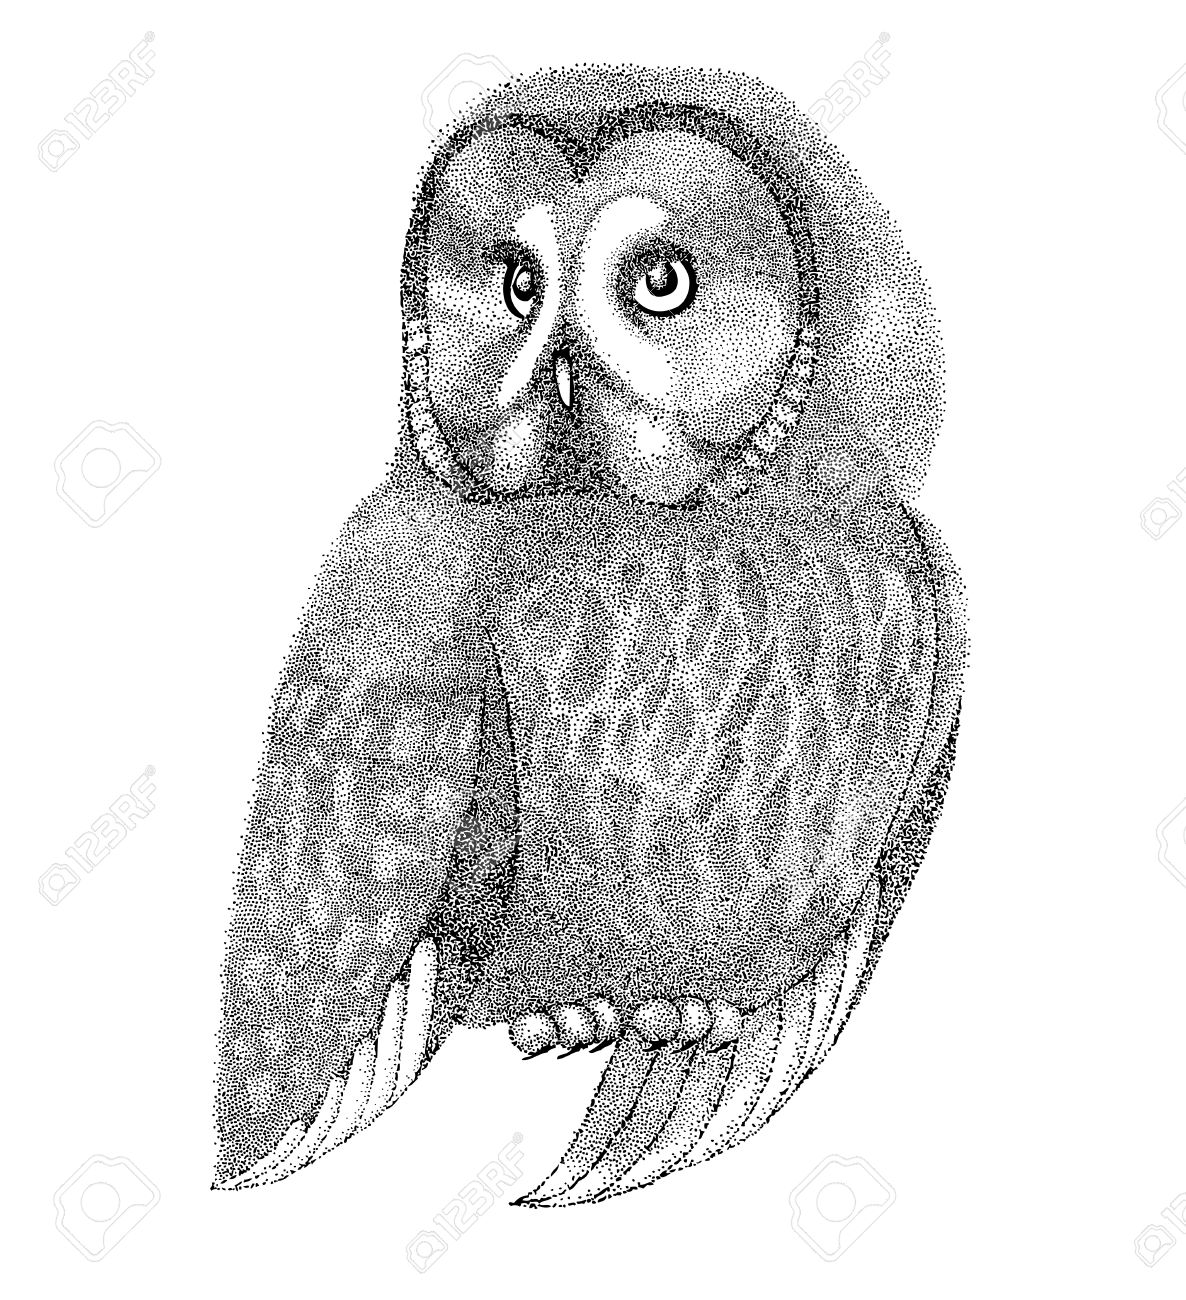 Graphic Pen Drawings 24167876-sketch-owls-drawn